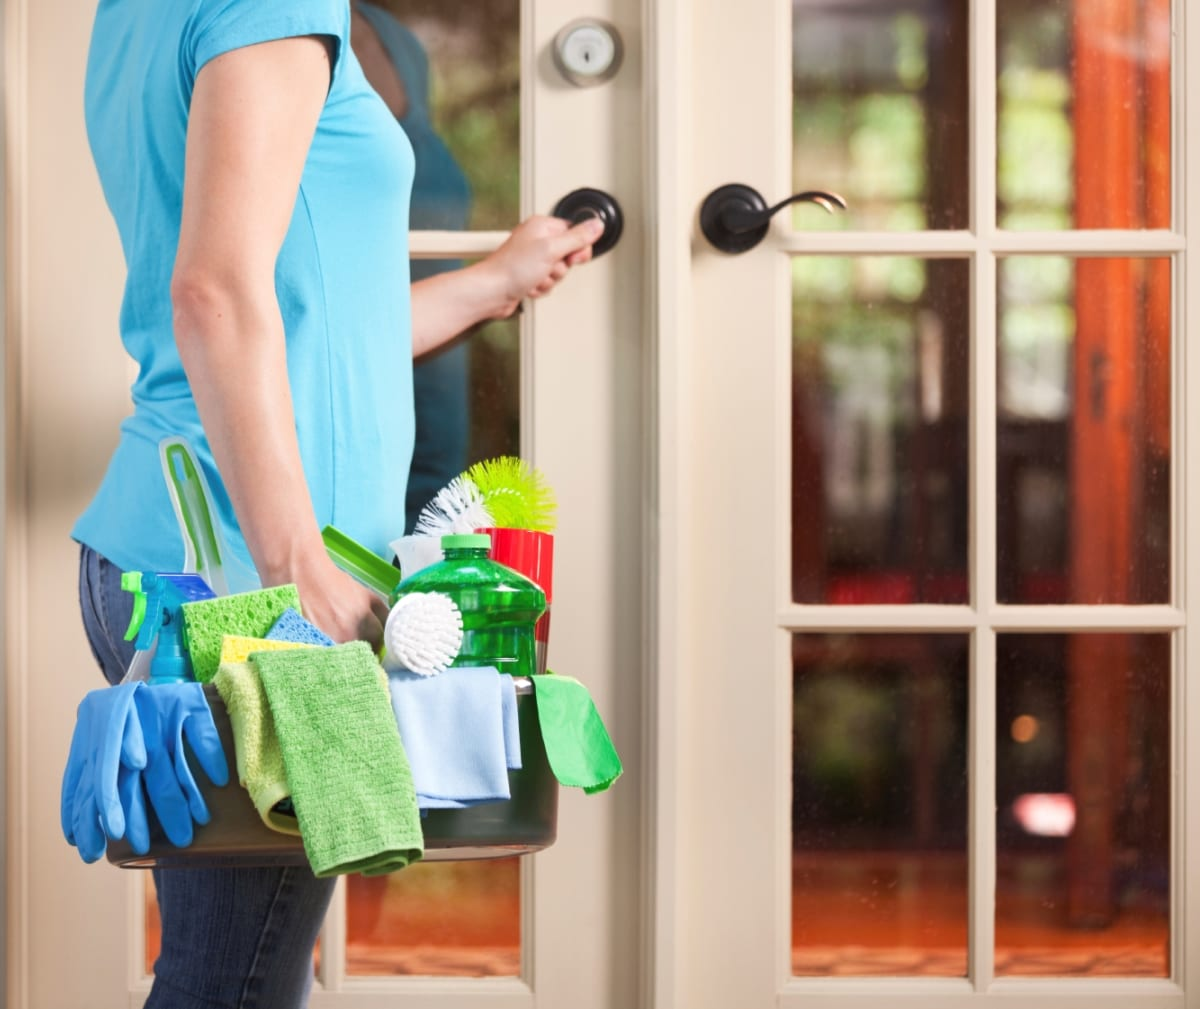 Considerations When Hiring a Cleaning Service